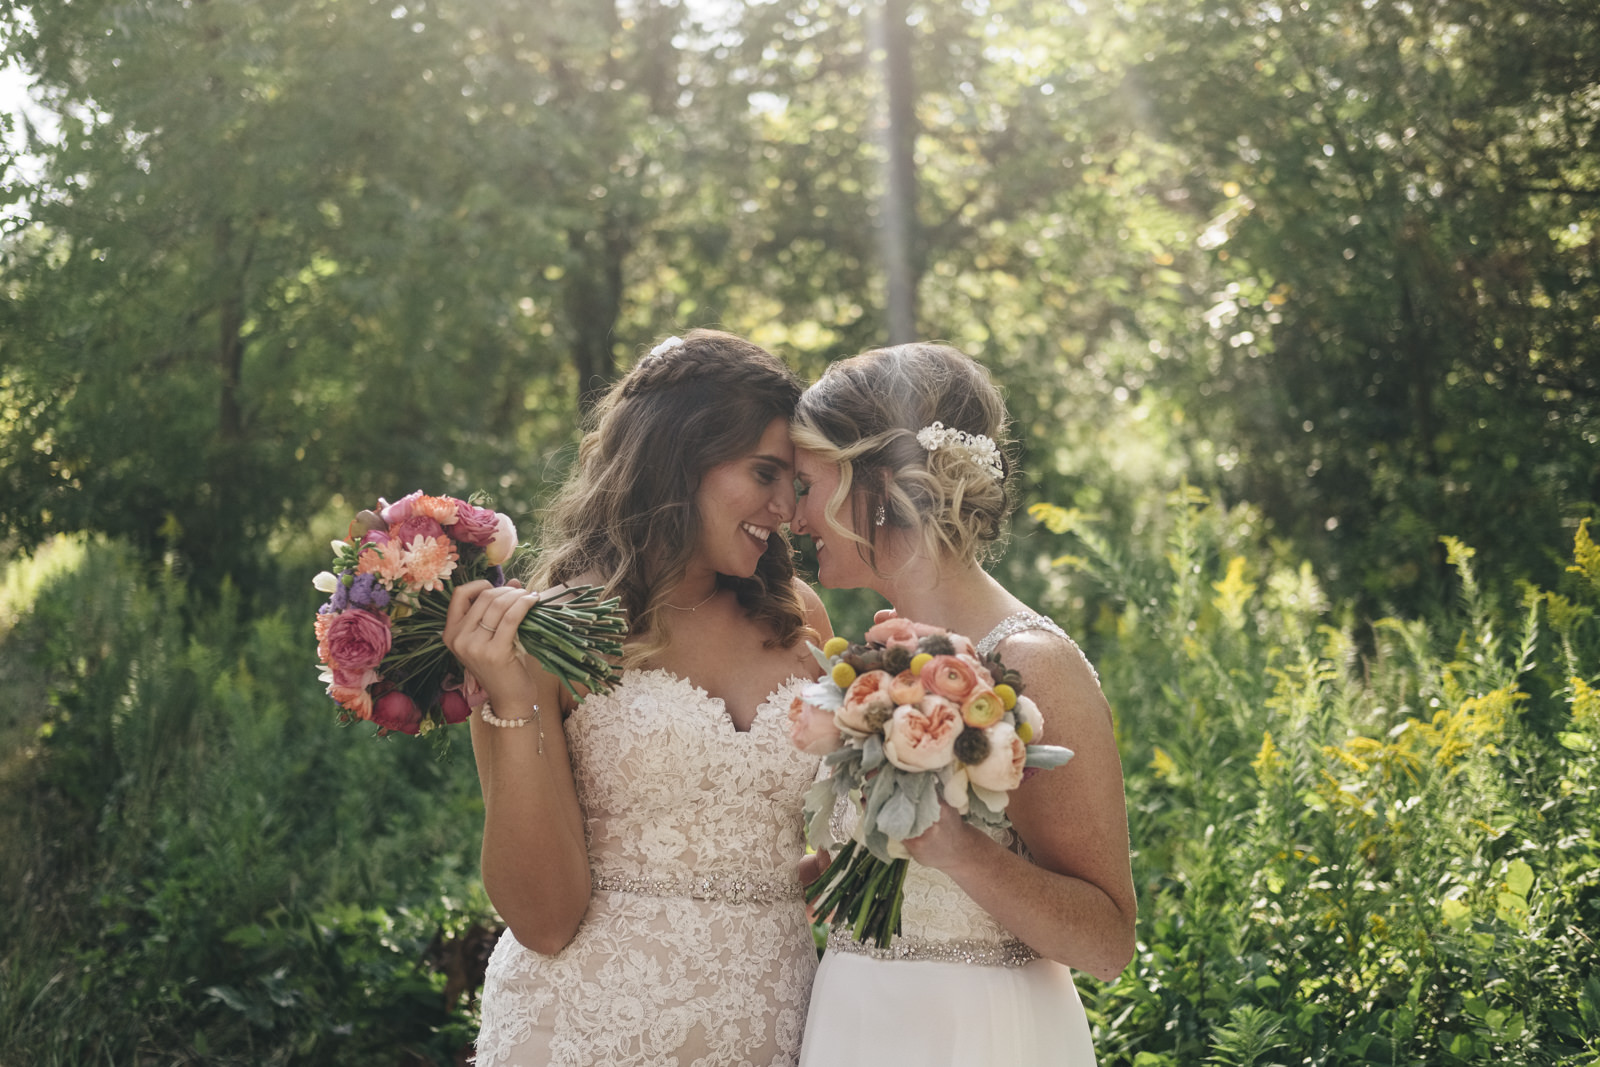 Chris and LeeAnn, two brides, go in for a kiss during their creative session in Toledo, Ohio.